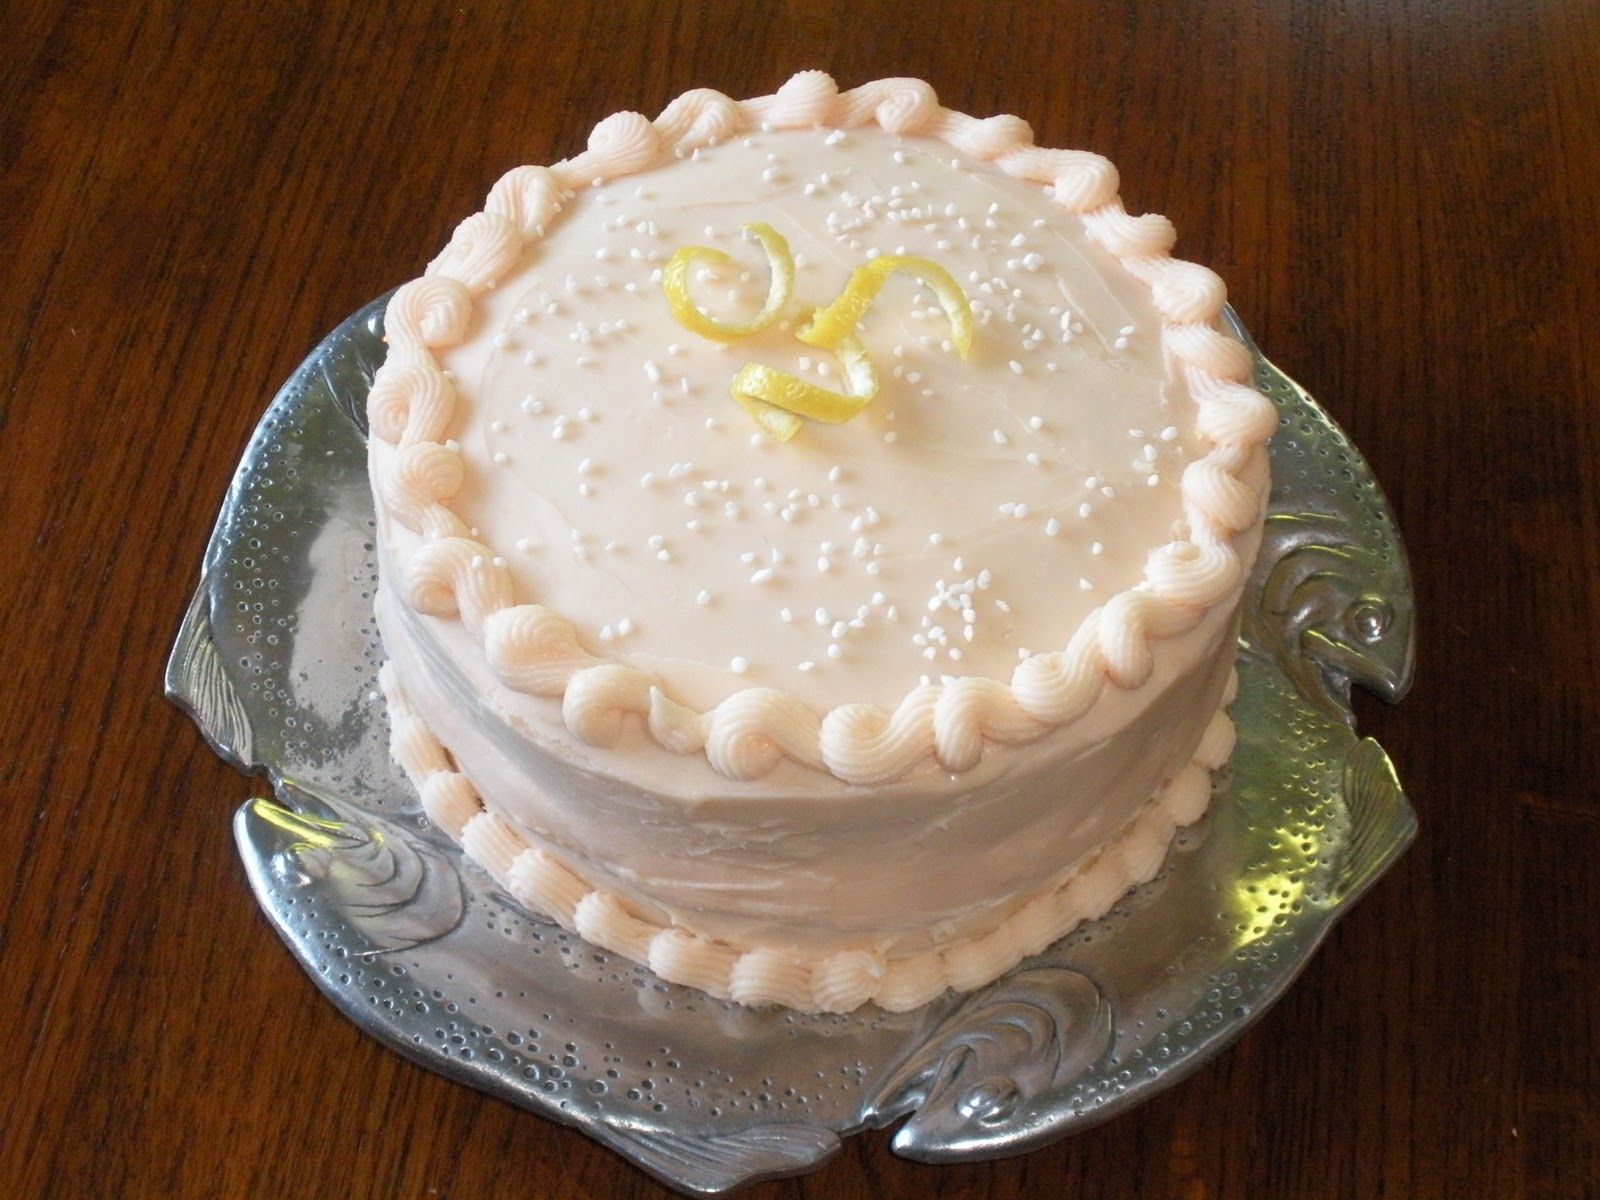 frosting genoise layer cake with rum syrup and whipped cream frosting ...